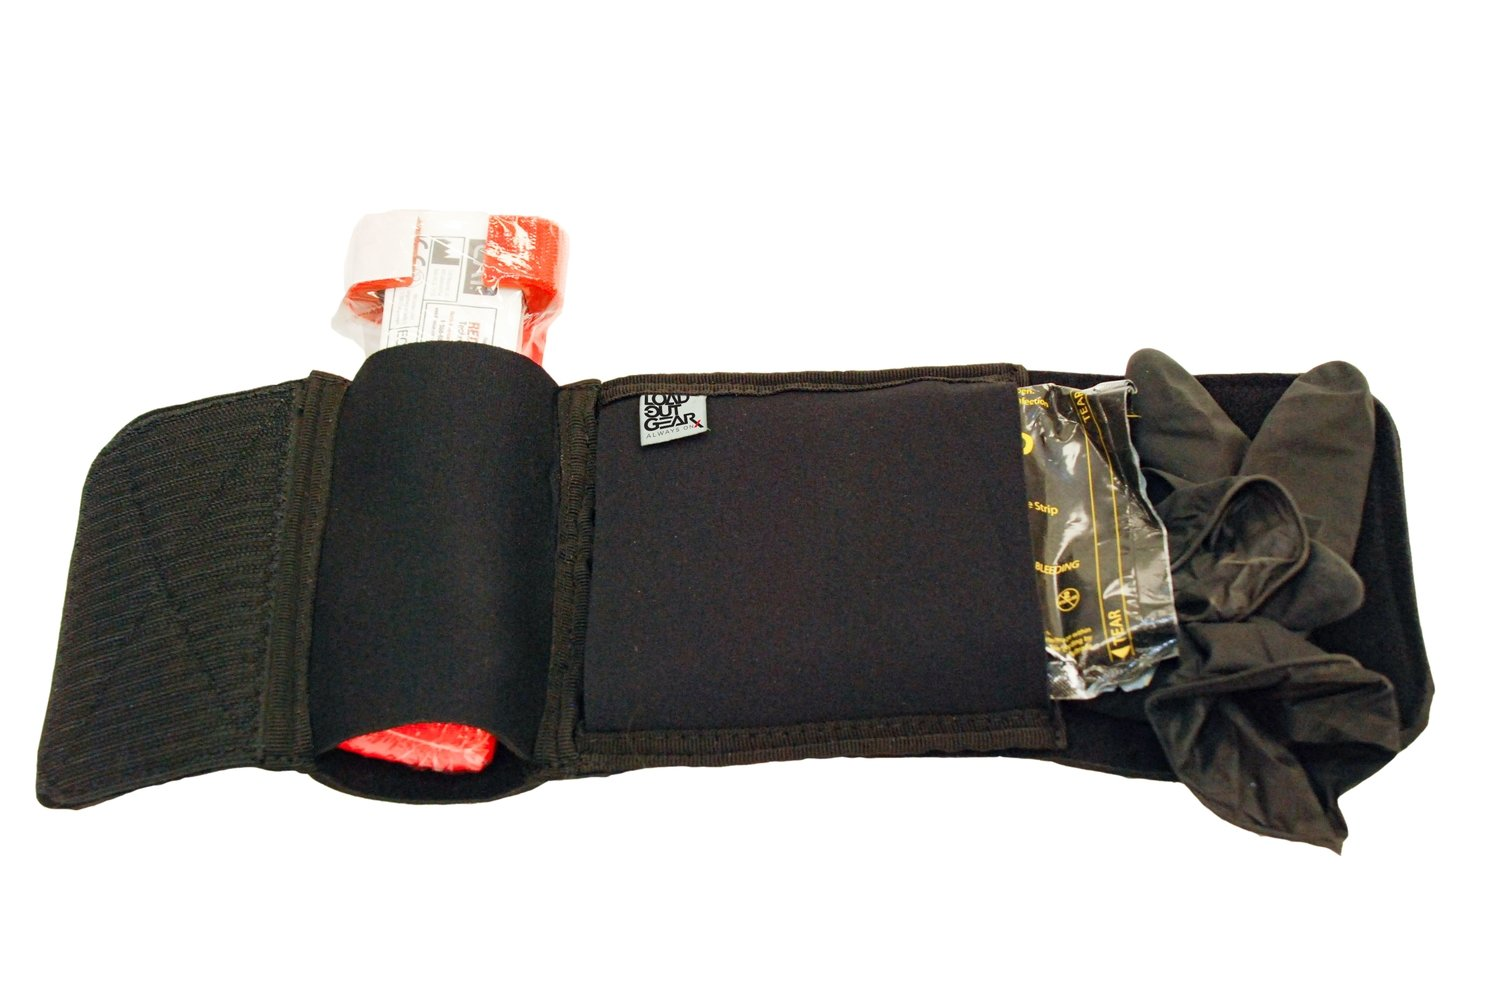 LoadOut Gear Tagalong Bleed Control Kits 2 Pocket-Internal Vest